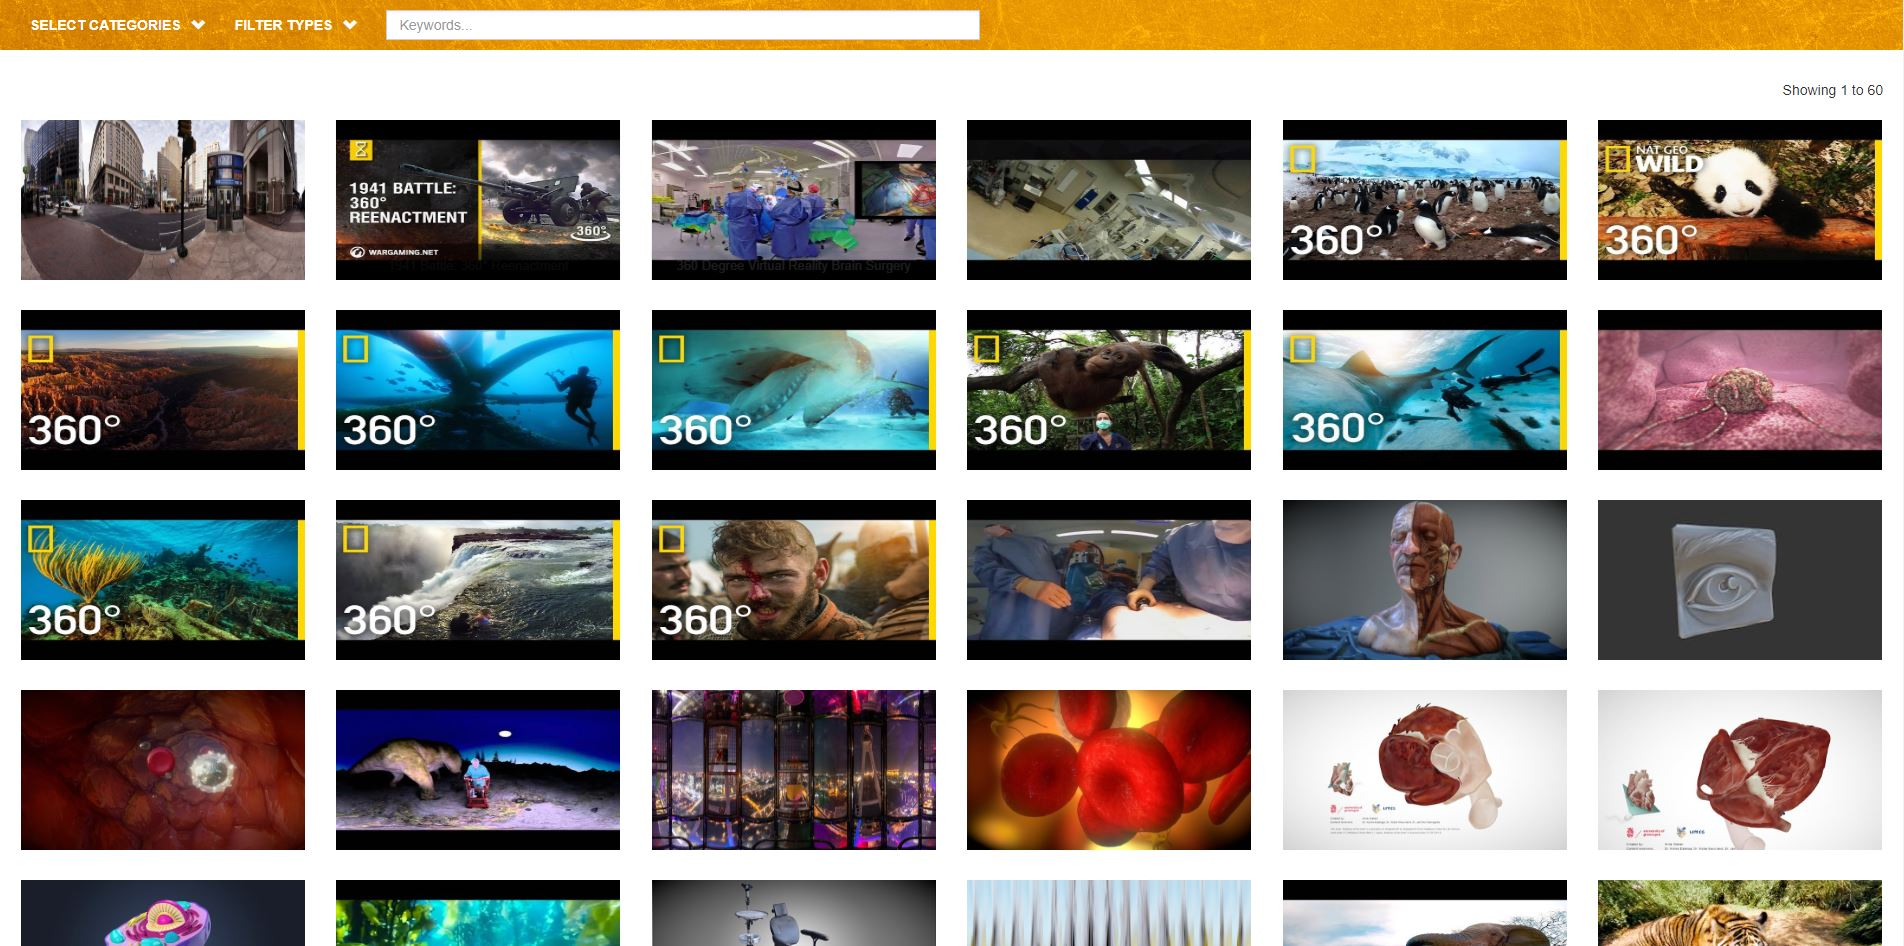 The homepage of Drexel's virtual reality repository shows a random selection of images that faculty members can download.